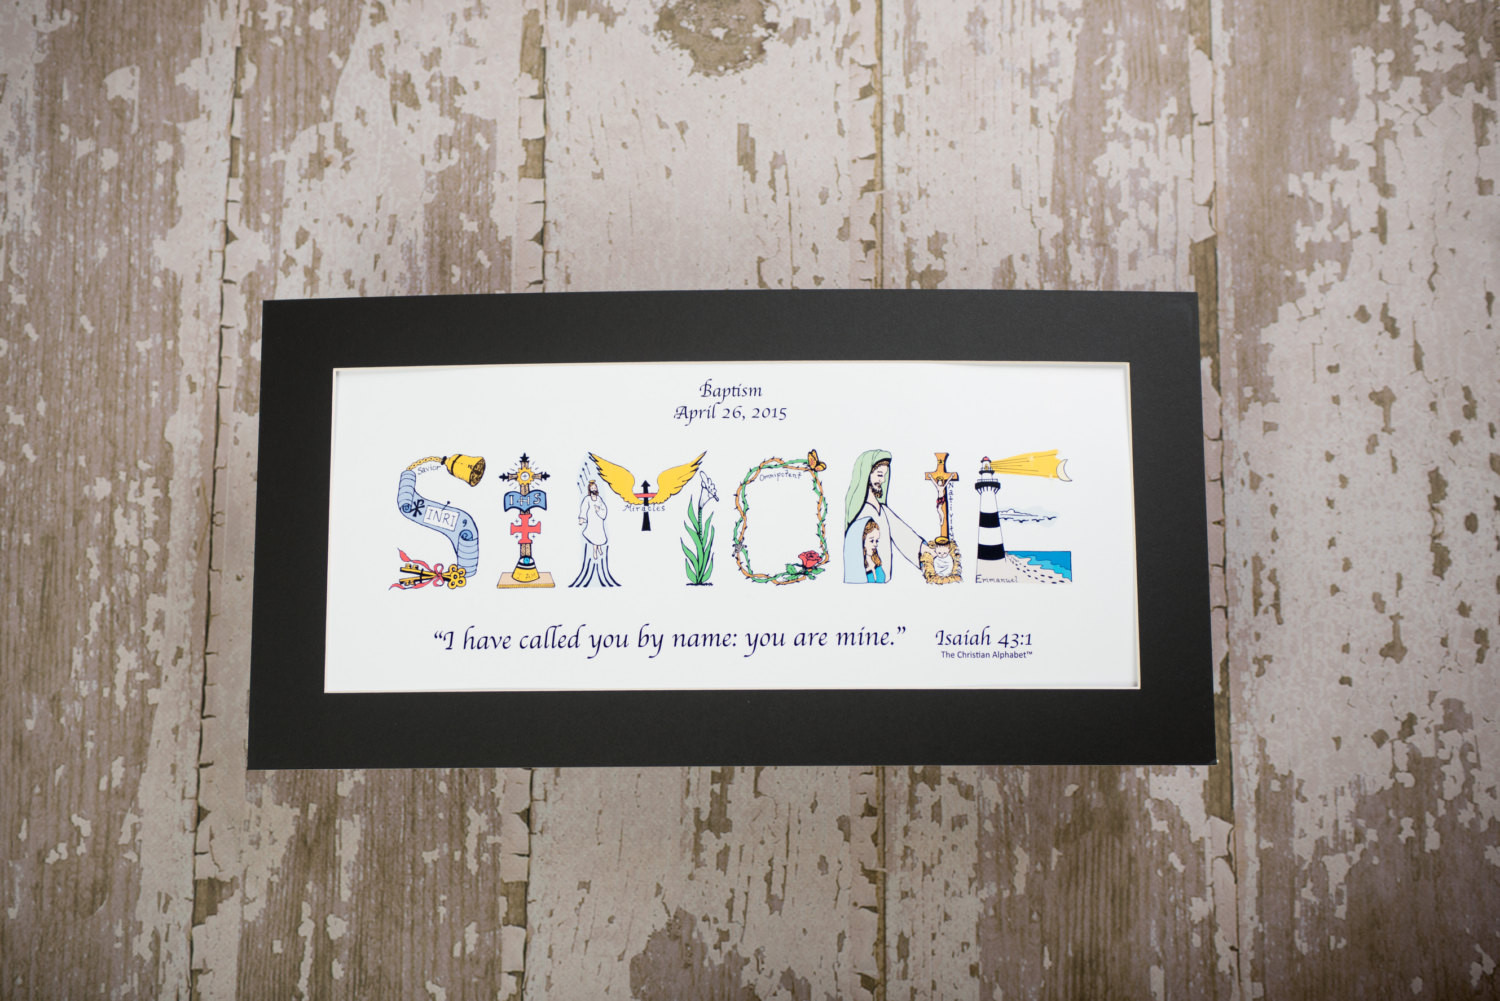 Dedication Gifts For Baby Boy  Baby Dedication Gift Personalized Christian Gifts